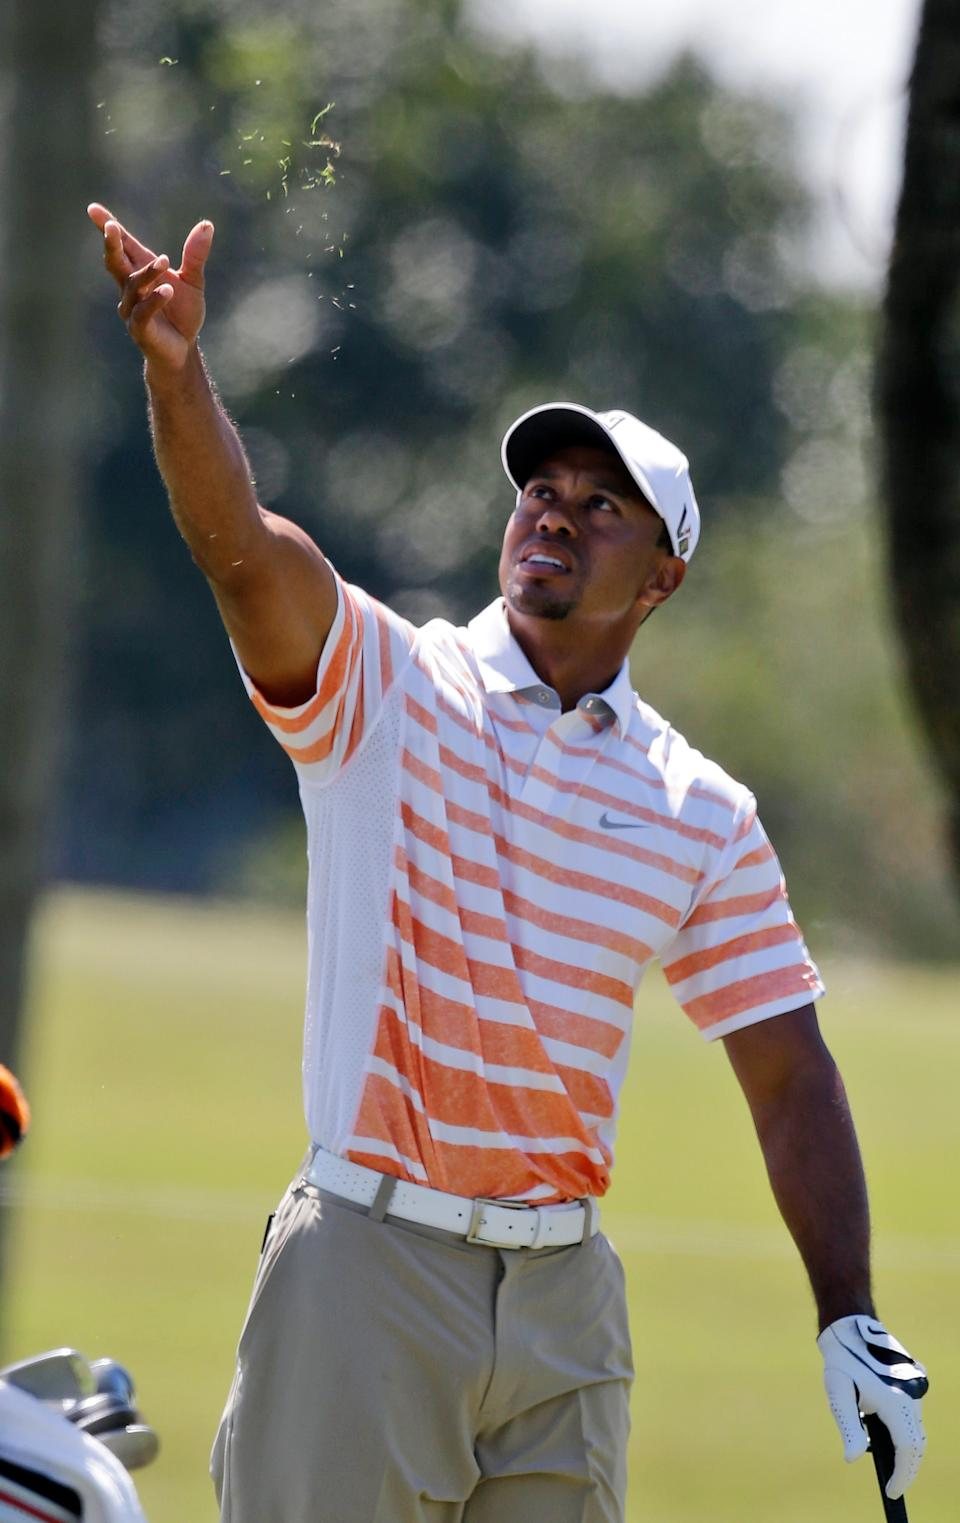 Tiger Woods checks the wind direction during the second round of the Cadillac Championship golf tournament Friday, March 8, 2013, in Doral, Fla. (AP Photo/Wilfredo Lee)